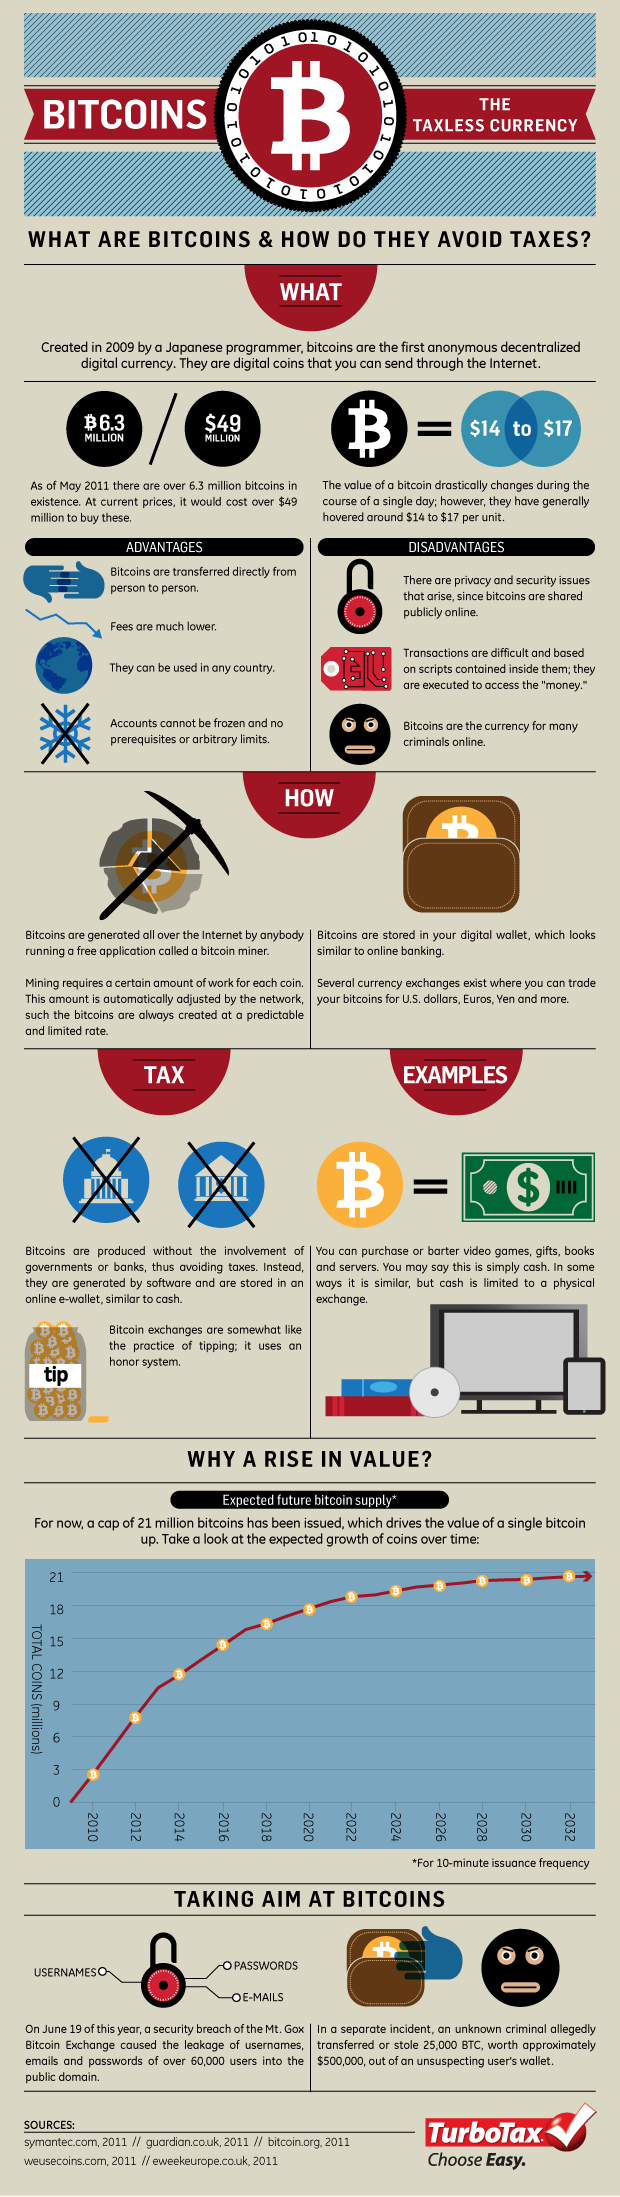 What Are Bitcoins and How Do They Avoid Taxes